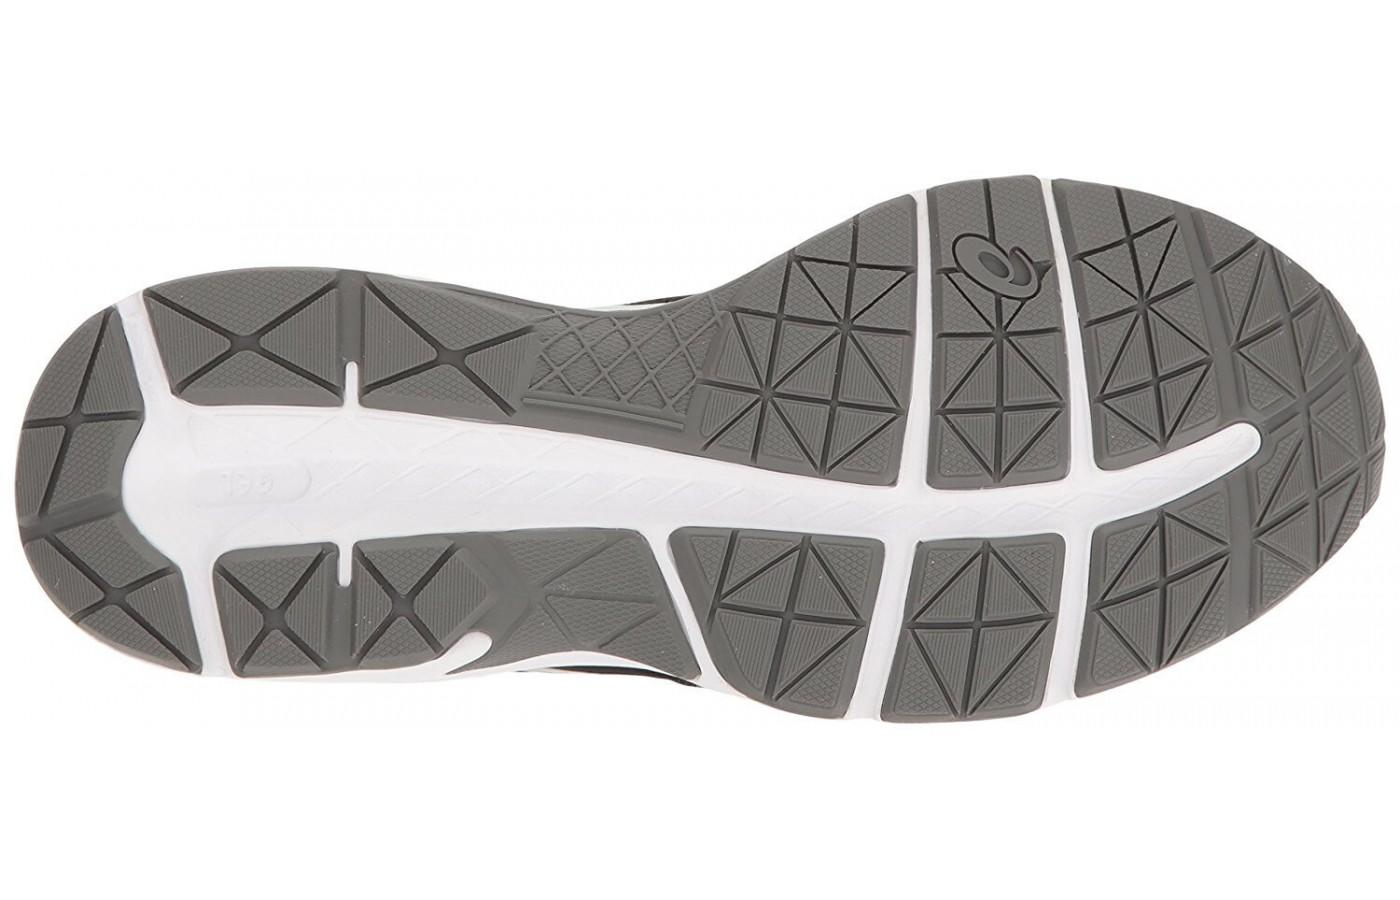 AHAR is used for the outsole.